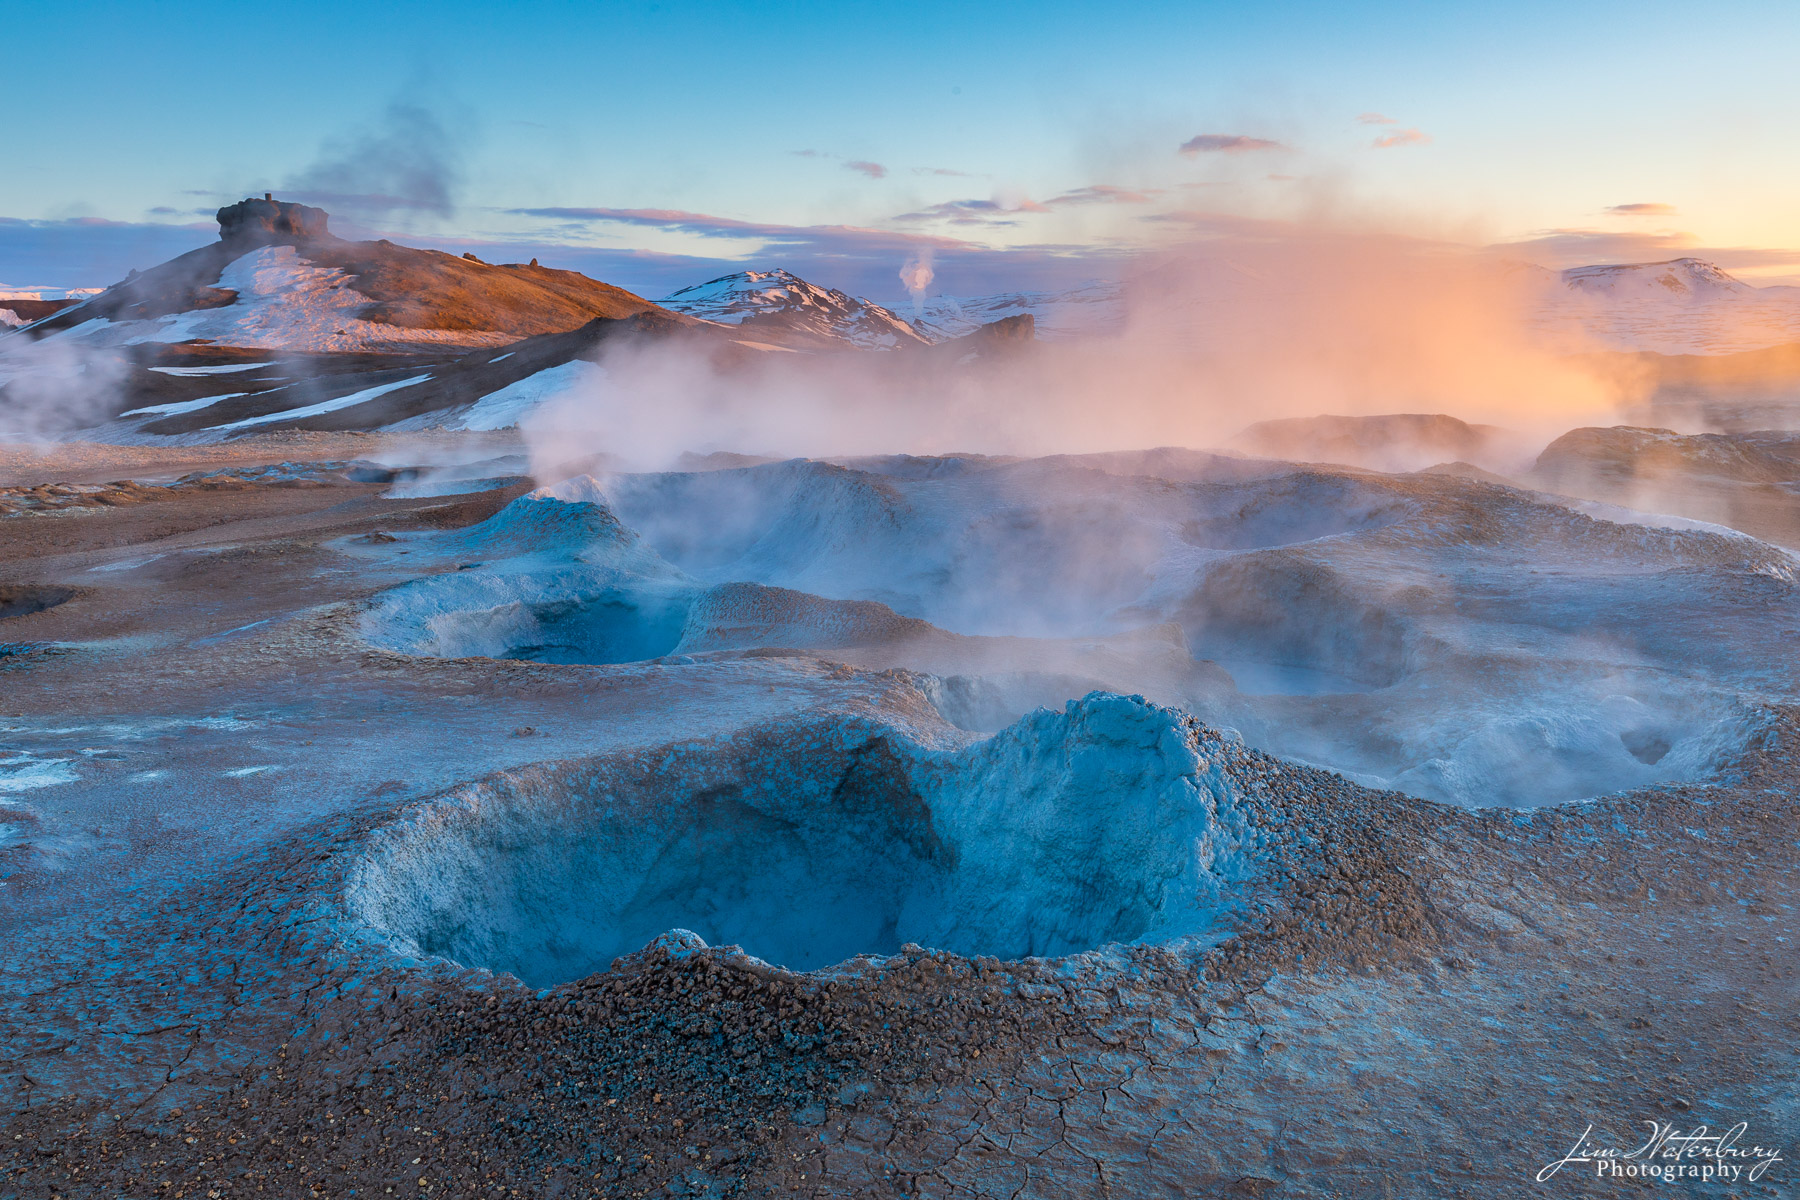 The soft, warm light of sunrise illuminates the smoking fumaroles and blue-rimmed boiling mud pots of the Namaskard geothermal...